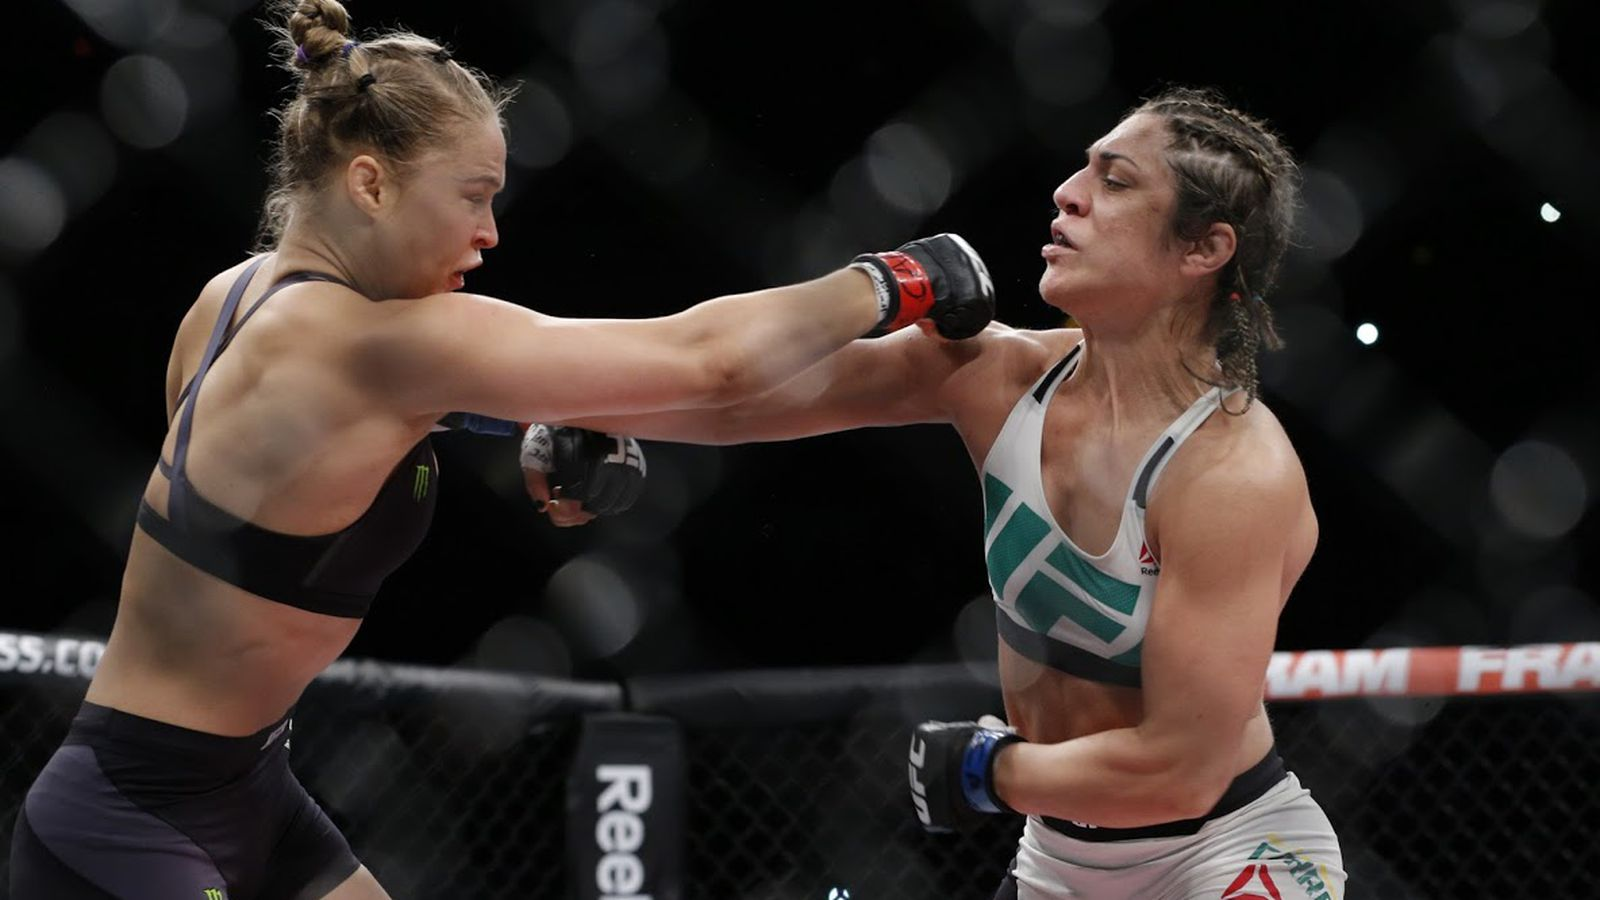 Ufc 190 Results Ronda Rousey Knocks Out Bethe Correia